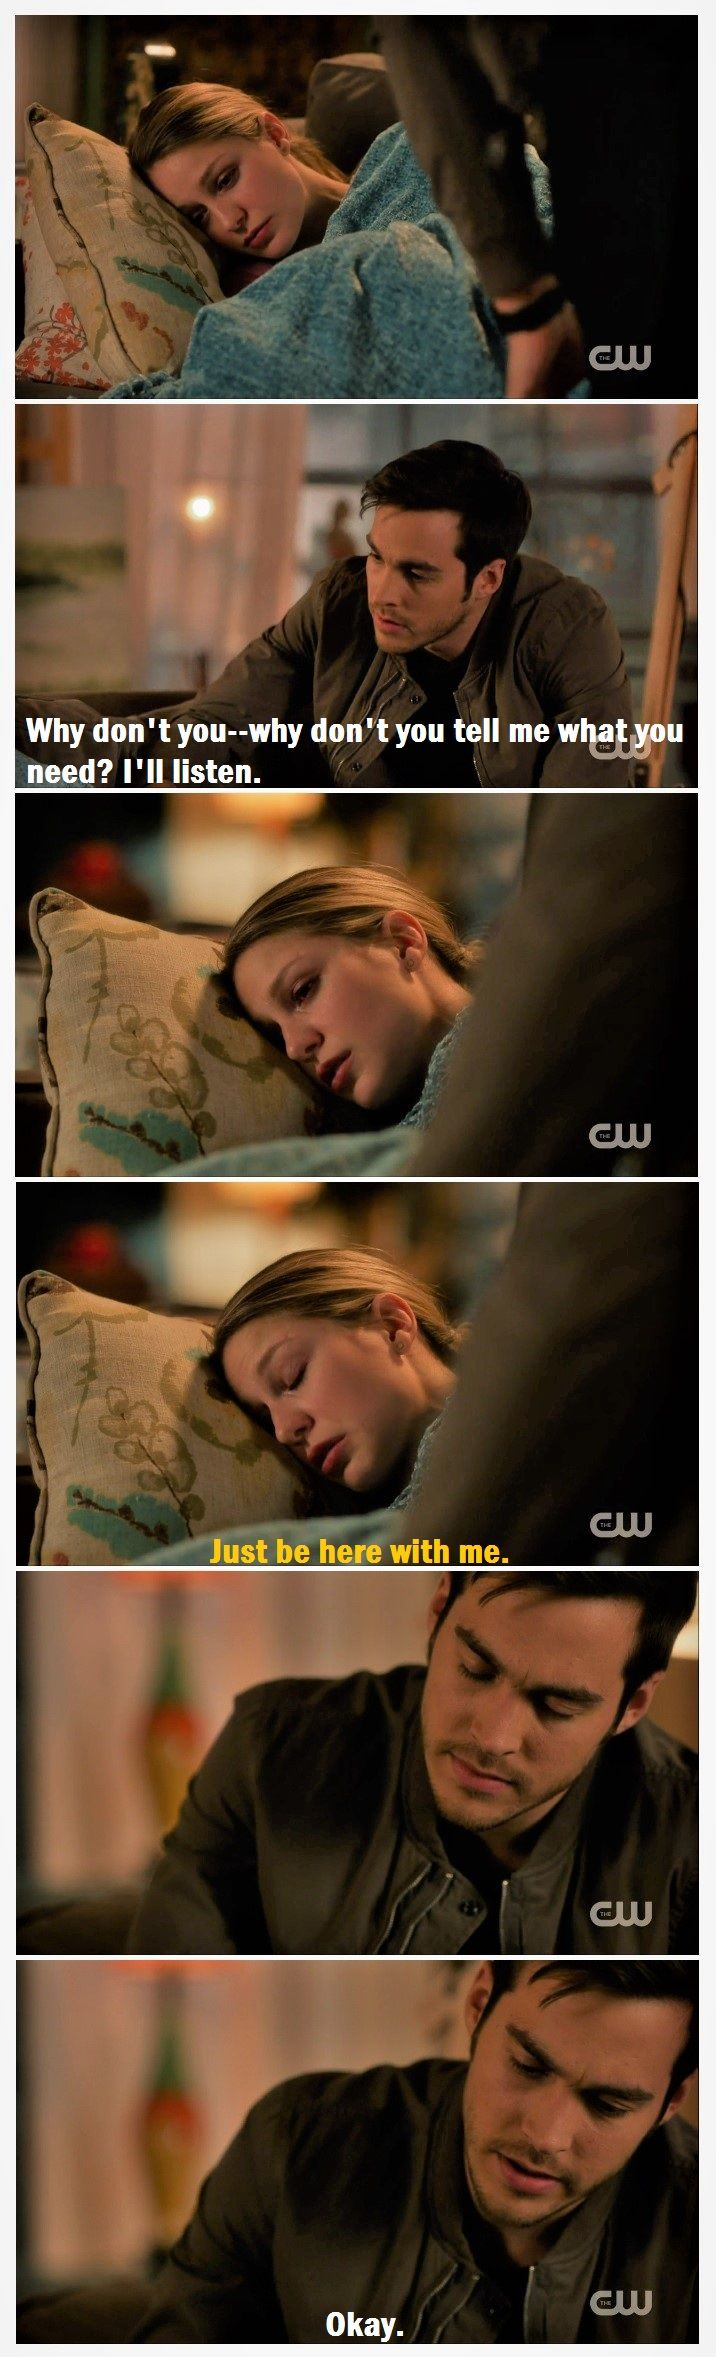 Why I <3 these two: Kara's essentially physically indestructible. Emotionally, she's so vulnerable that she retreats into herself. Mon-El (when paying attention) has a natural  read on emotions, esp. Kara's. By just being there with her, being himself while she's upset & not asking her to describe her feelings, he's comforting her.  |TV Shows||CW||#Supergirl edit||Season 2||2x14||Homecoming||Kara x Mon-El||#Karamel edit||Kara Danvers||Melissa Benoist||Chris Wood||#DCTV|